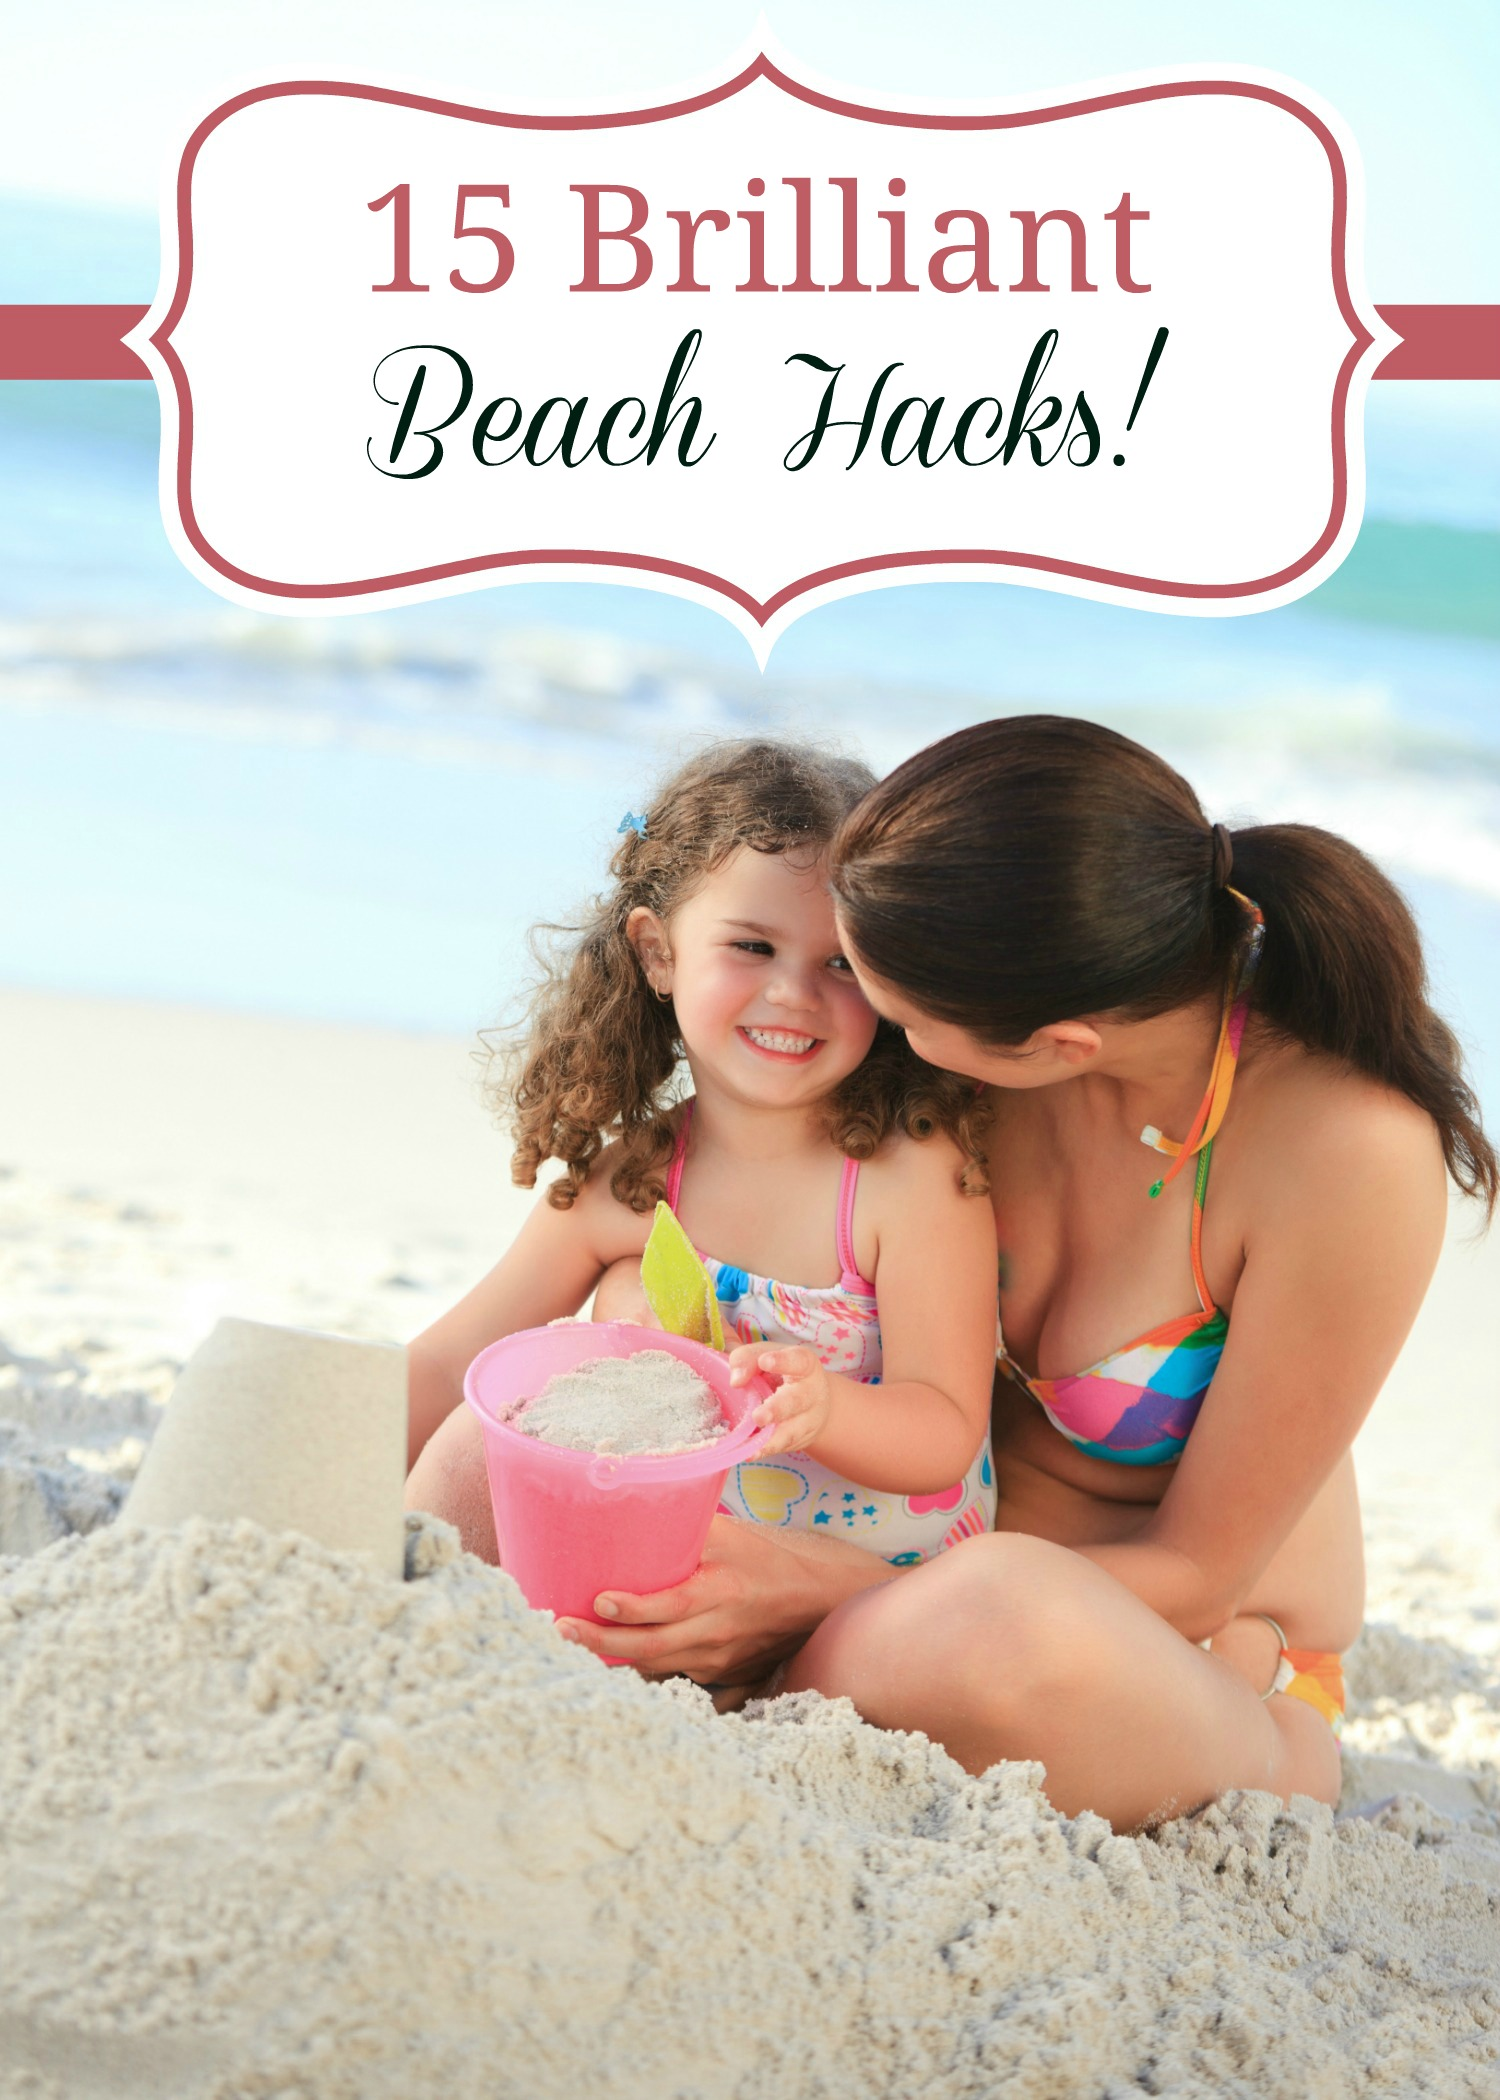 15 Brilliant Beach Hacks